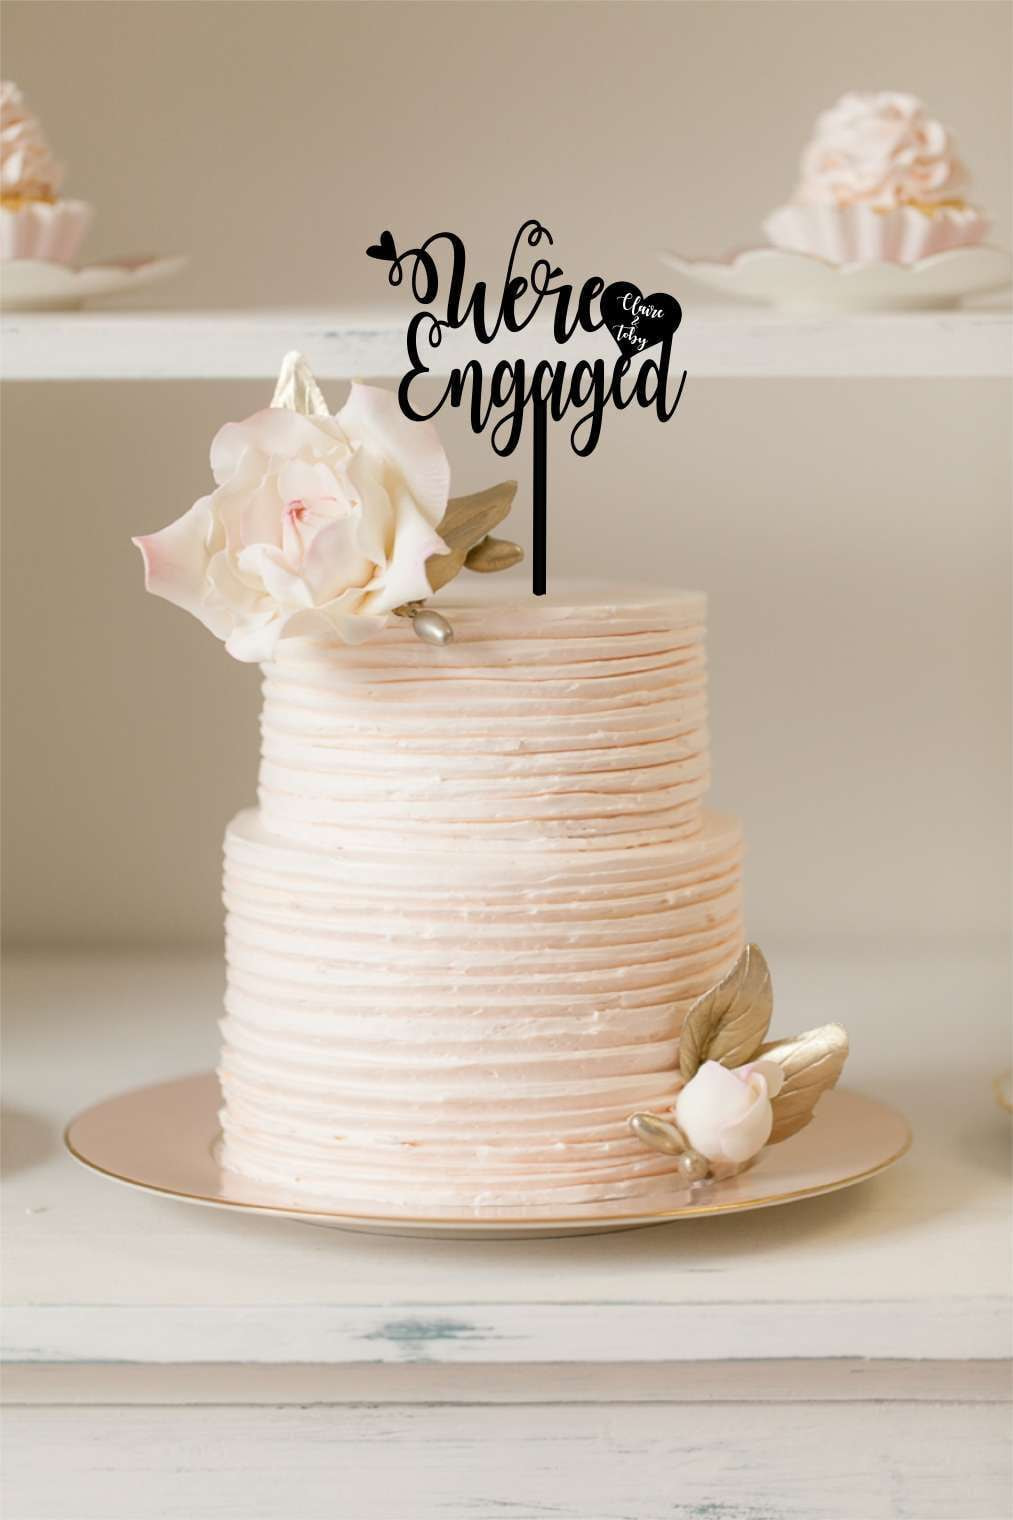 Cake Topper - We're Engaged - Silver Belle Design